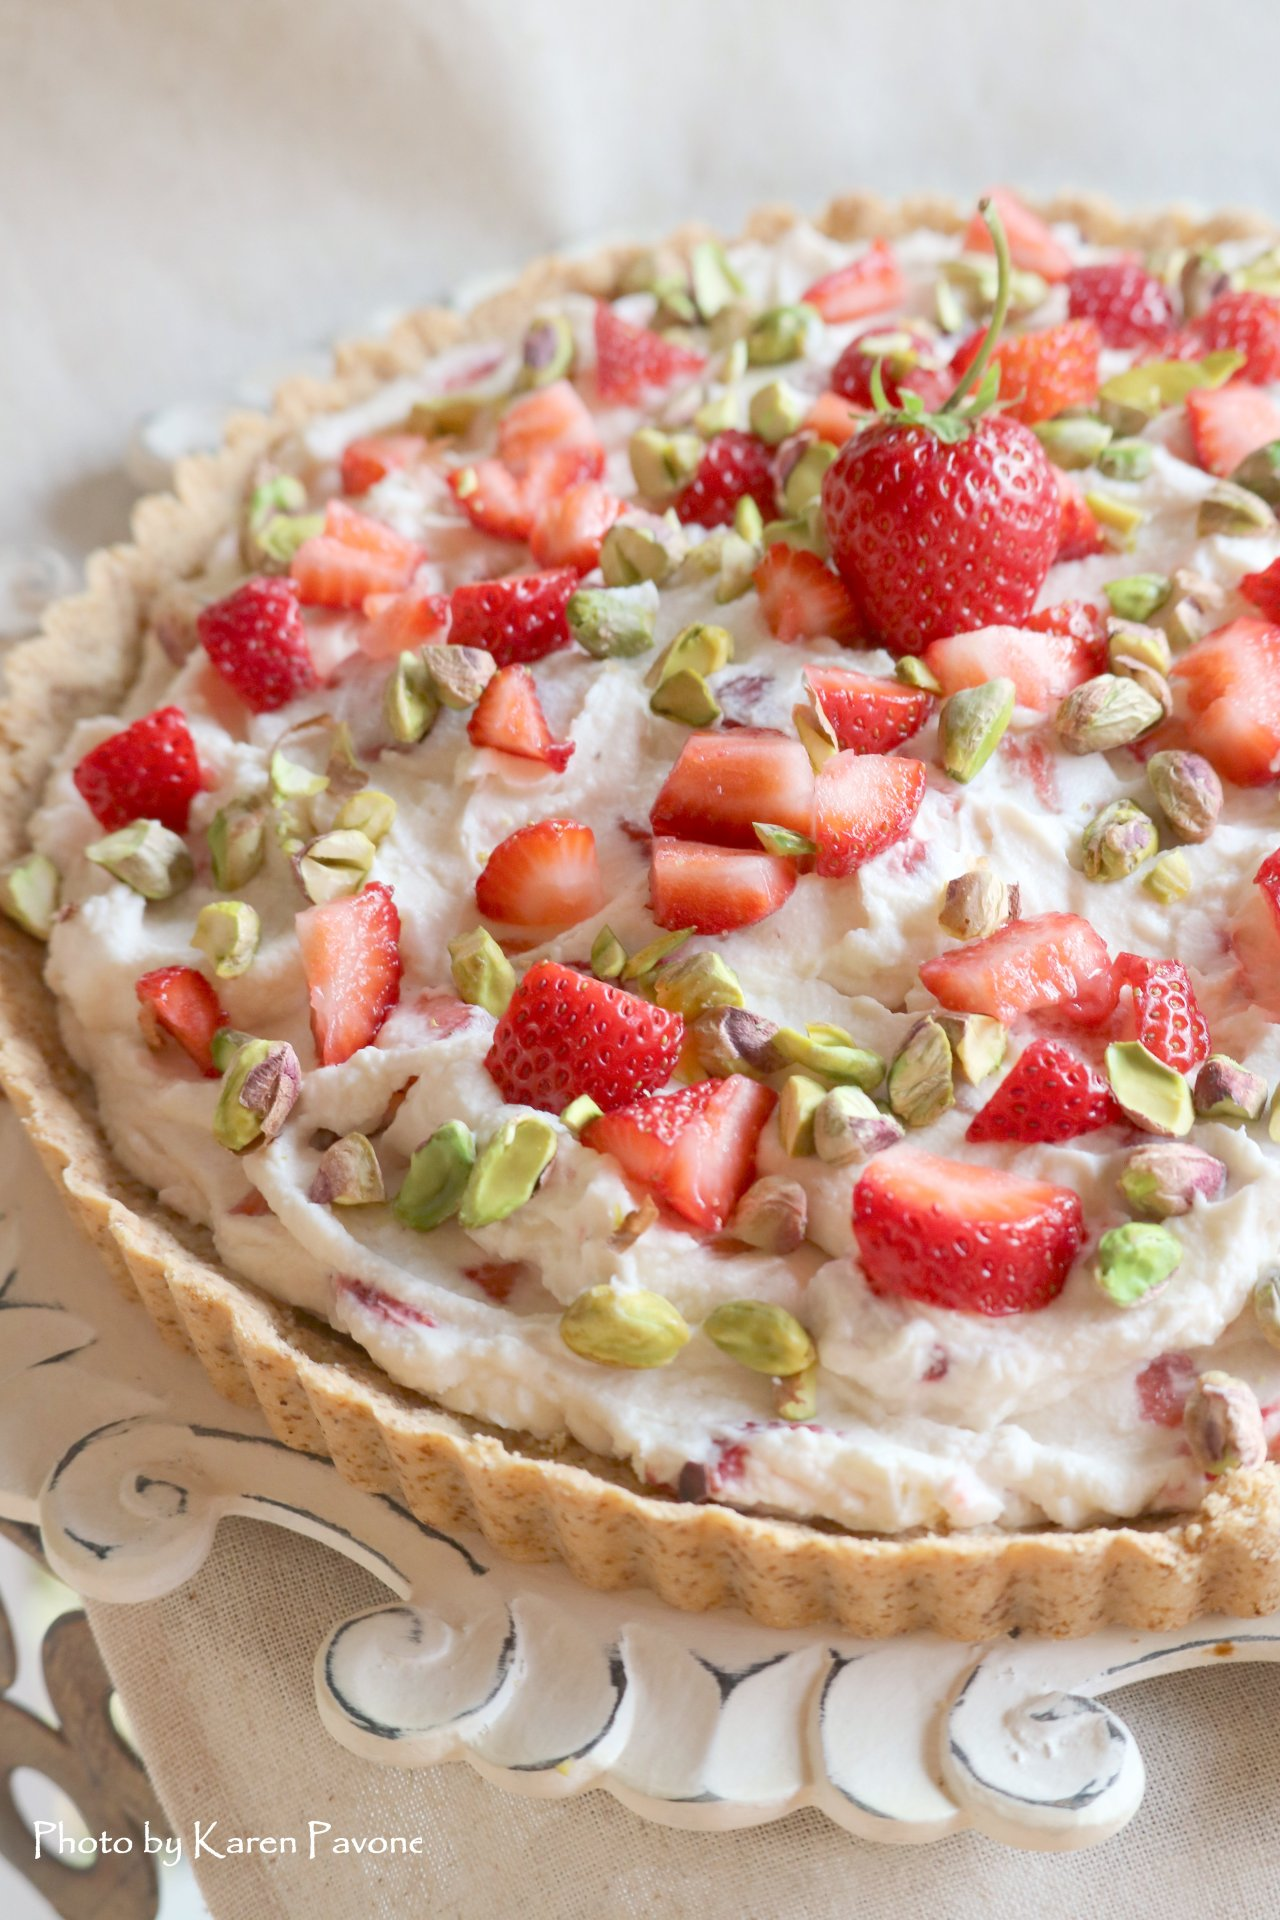 In Season: Gluten-Free Strawberry Mascarpone Cream Tart with Pistachios